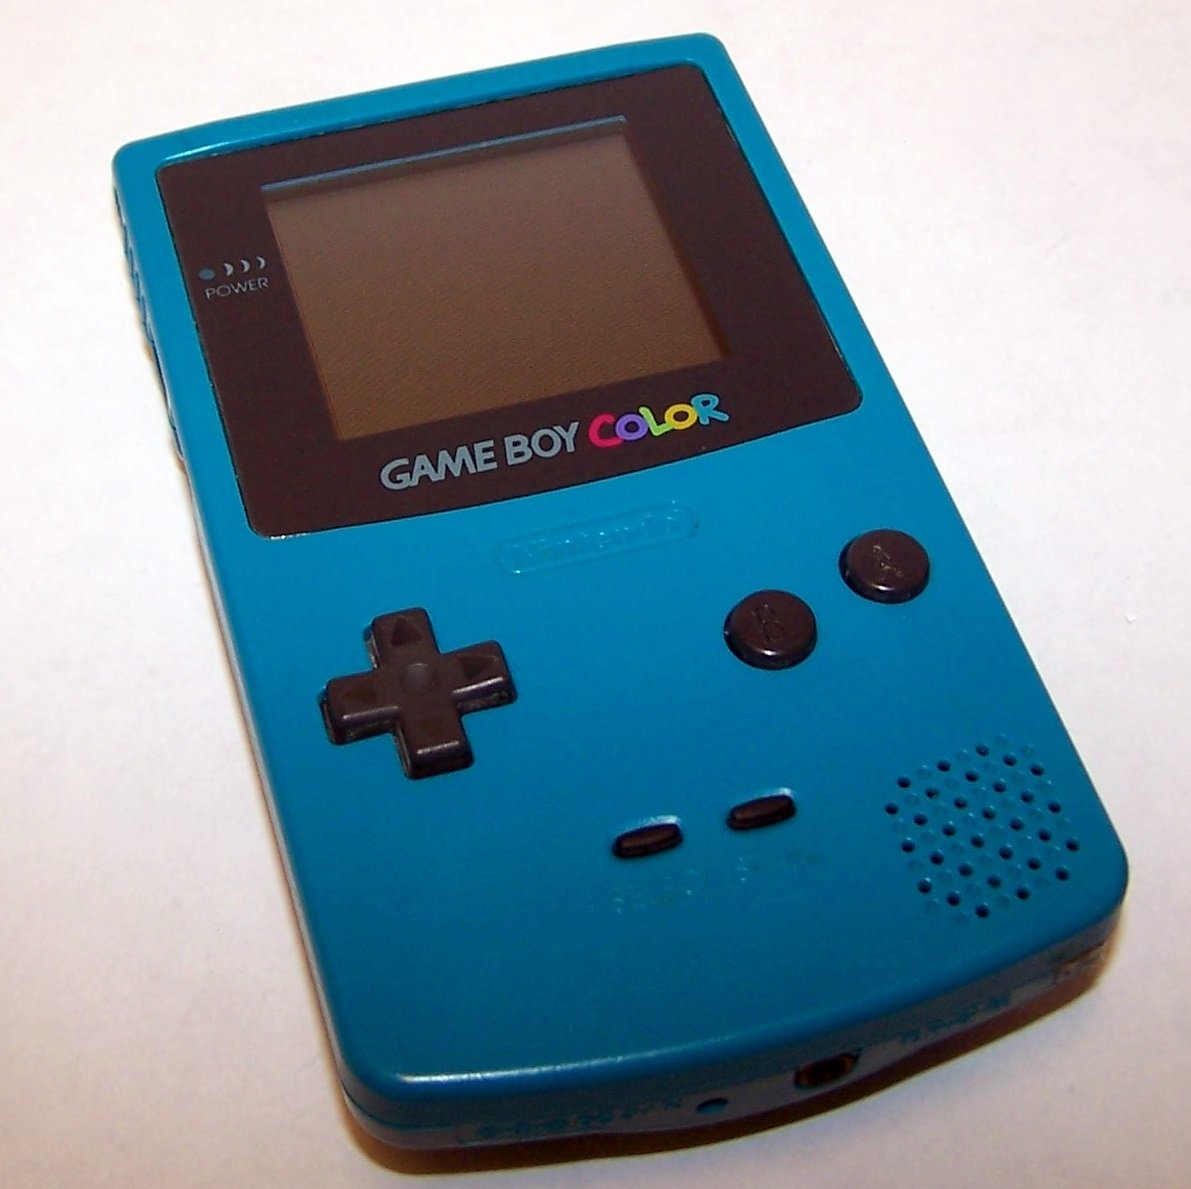 Nintendo Game Boy Color - Handheld game system with Game - Teal blue